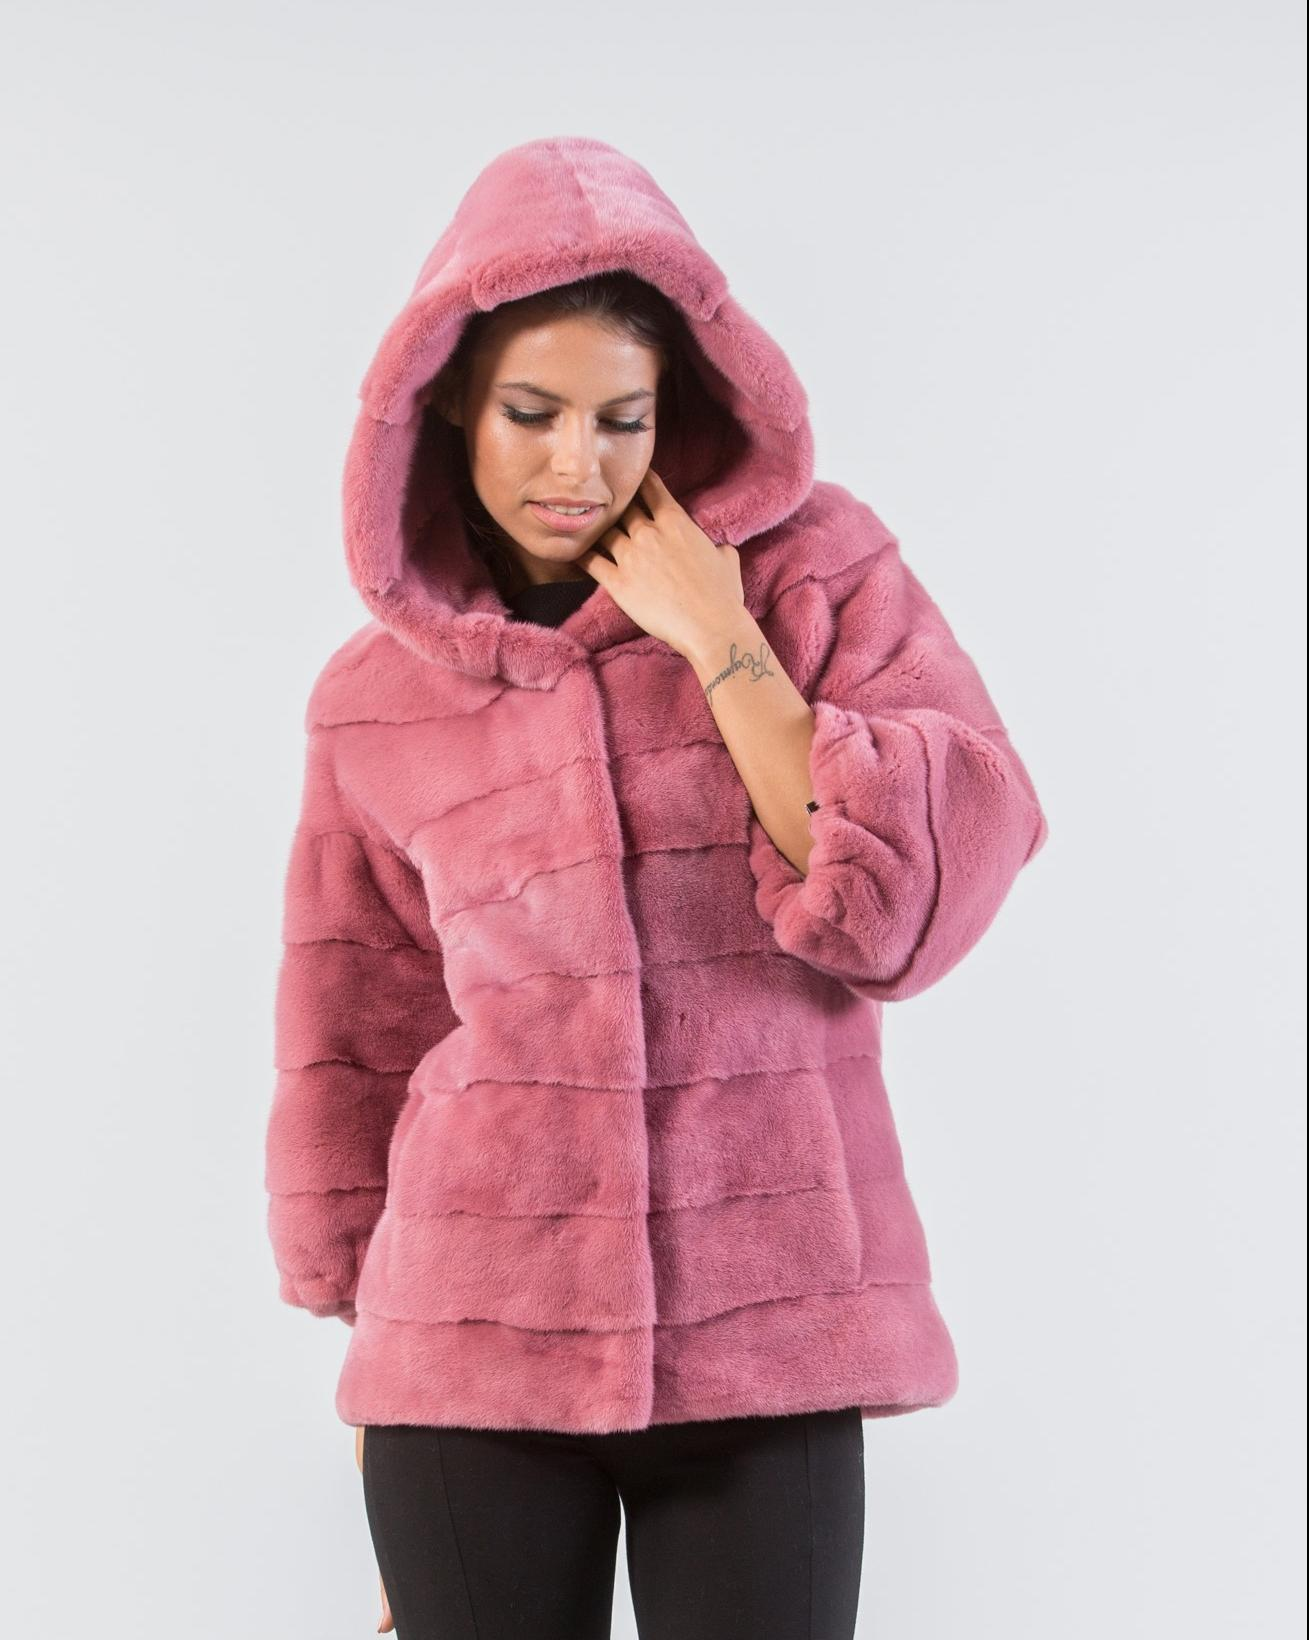 Pink Platinum Girls' Jackets & Outerwear. Pink Platinum. Pink Platinum Girls' Jackets & Outerwear. Showing 40 of 59 results that match your query. Pink Platinum Girls' Hooded Trench Raincoat Jacket with Animal Acents Lining. Product - Girls' Belted All Over Cheetah Print Puffer Jacket with Hood. Clearance. Product Image.